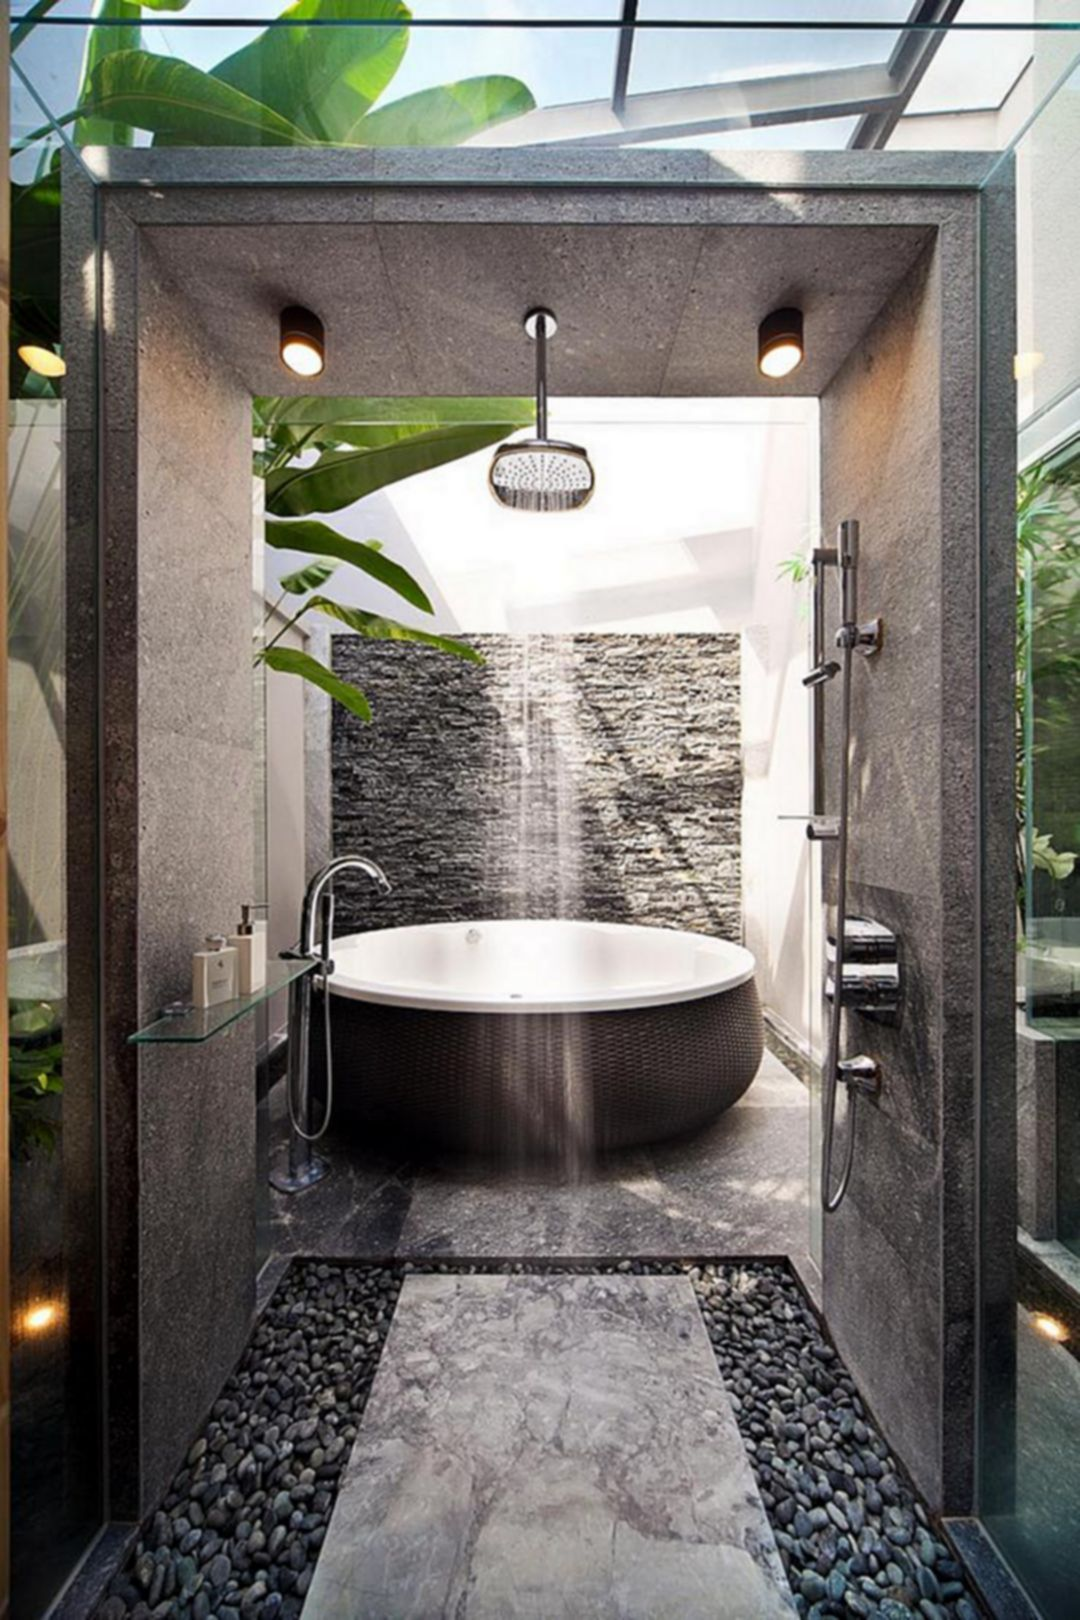 25 Stylish Hotel Bathroom Design Ideas That Can Be Applied To Your Home – Bathrooms